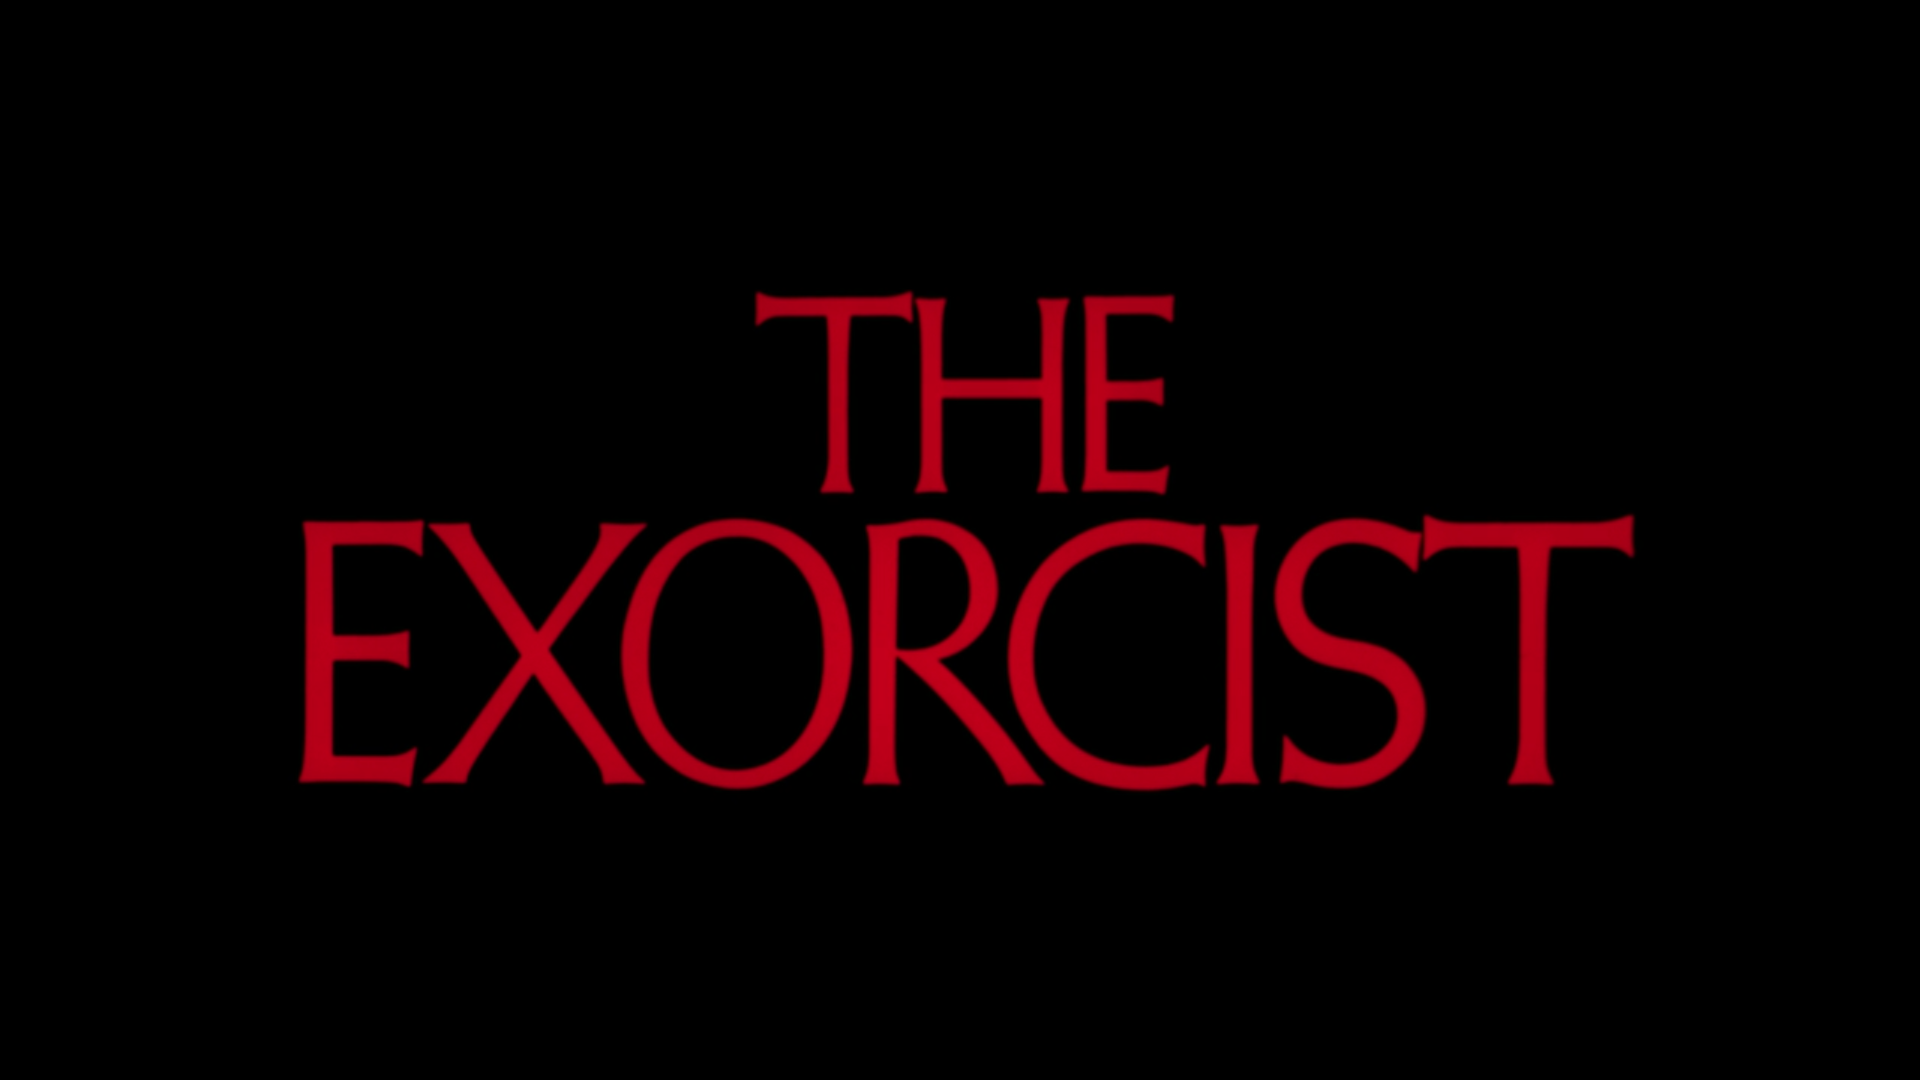 Eddie S 31 Days Of Halloween 2015 Day 23 The Exorcist